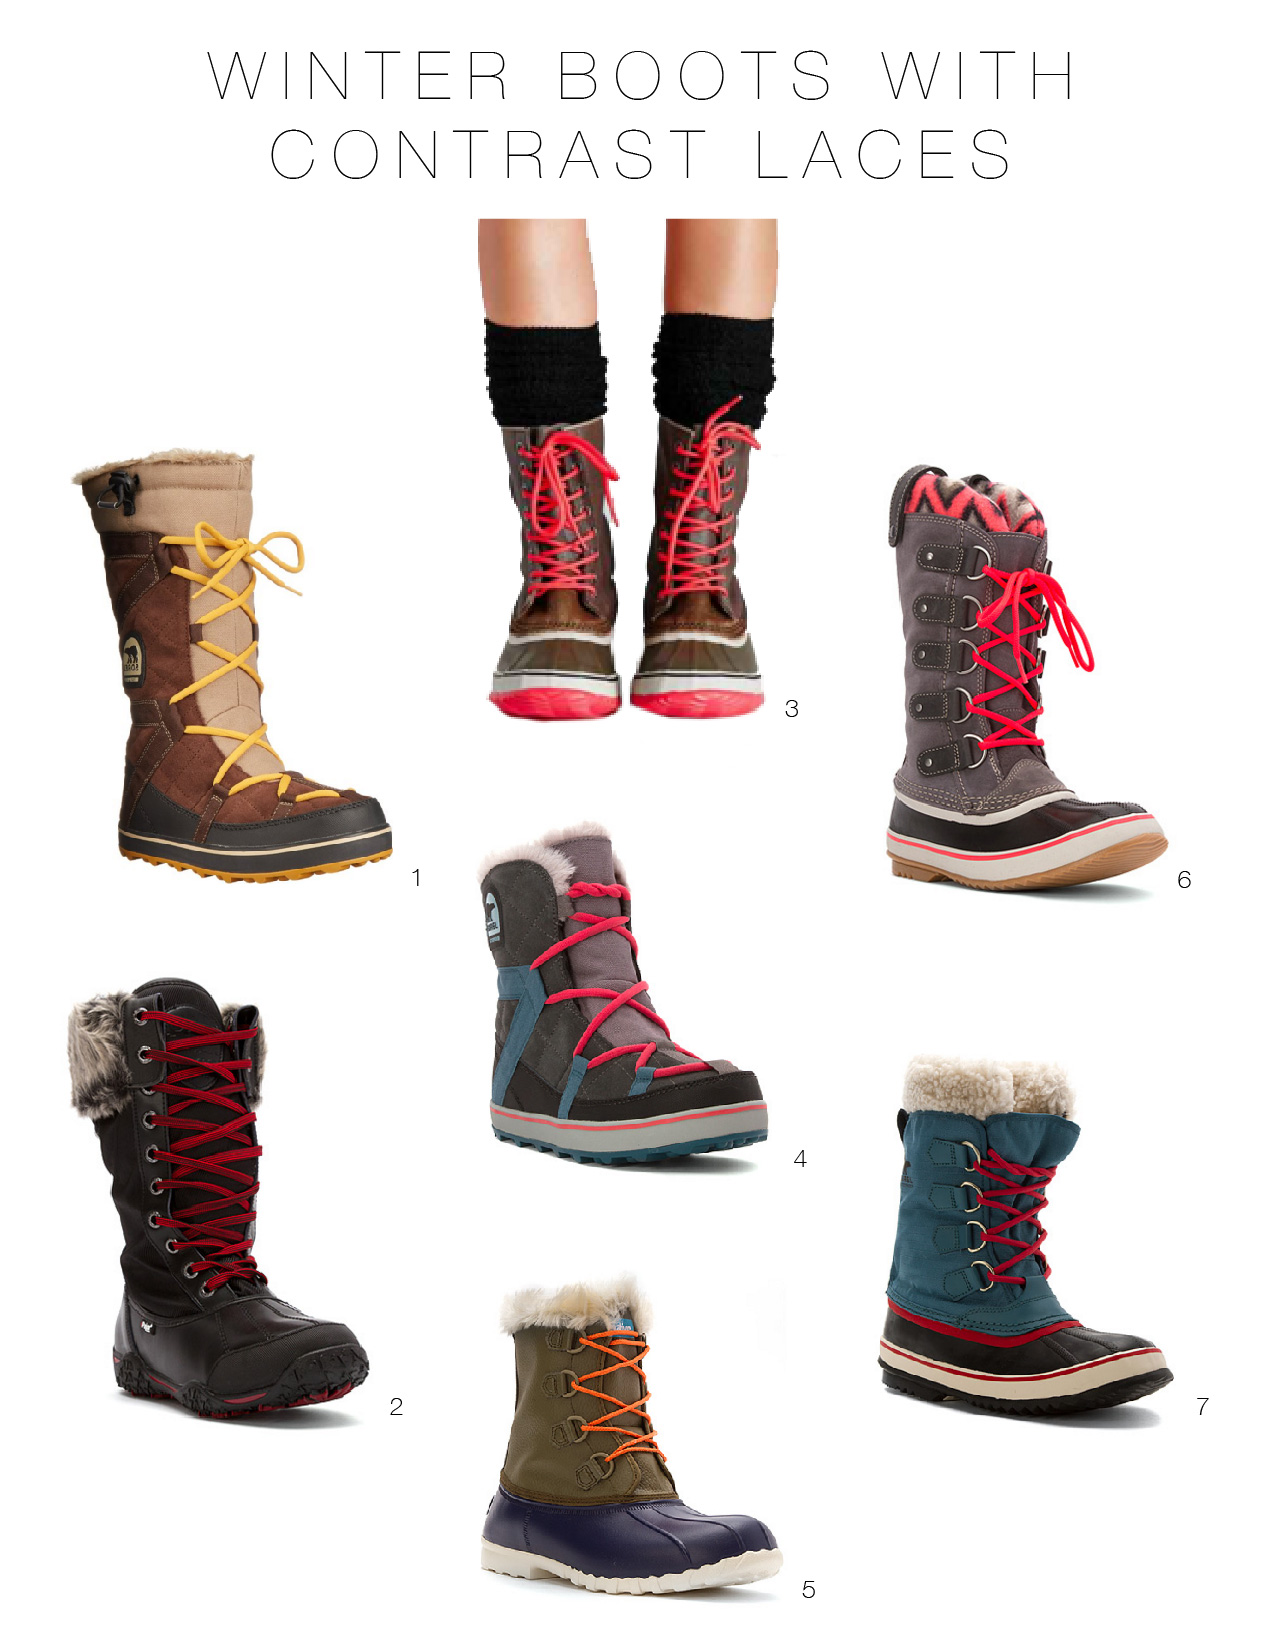 Best Boots For Snow - Cr Boot